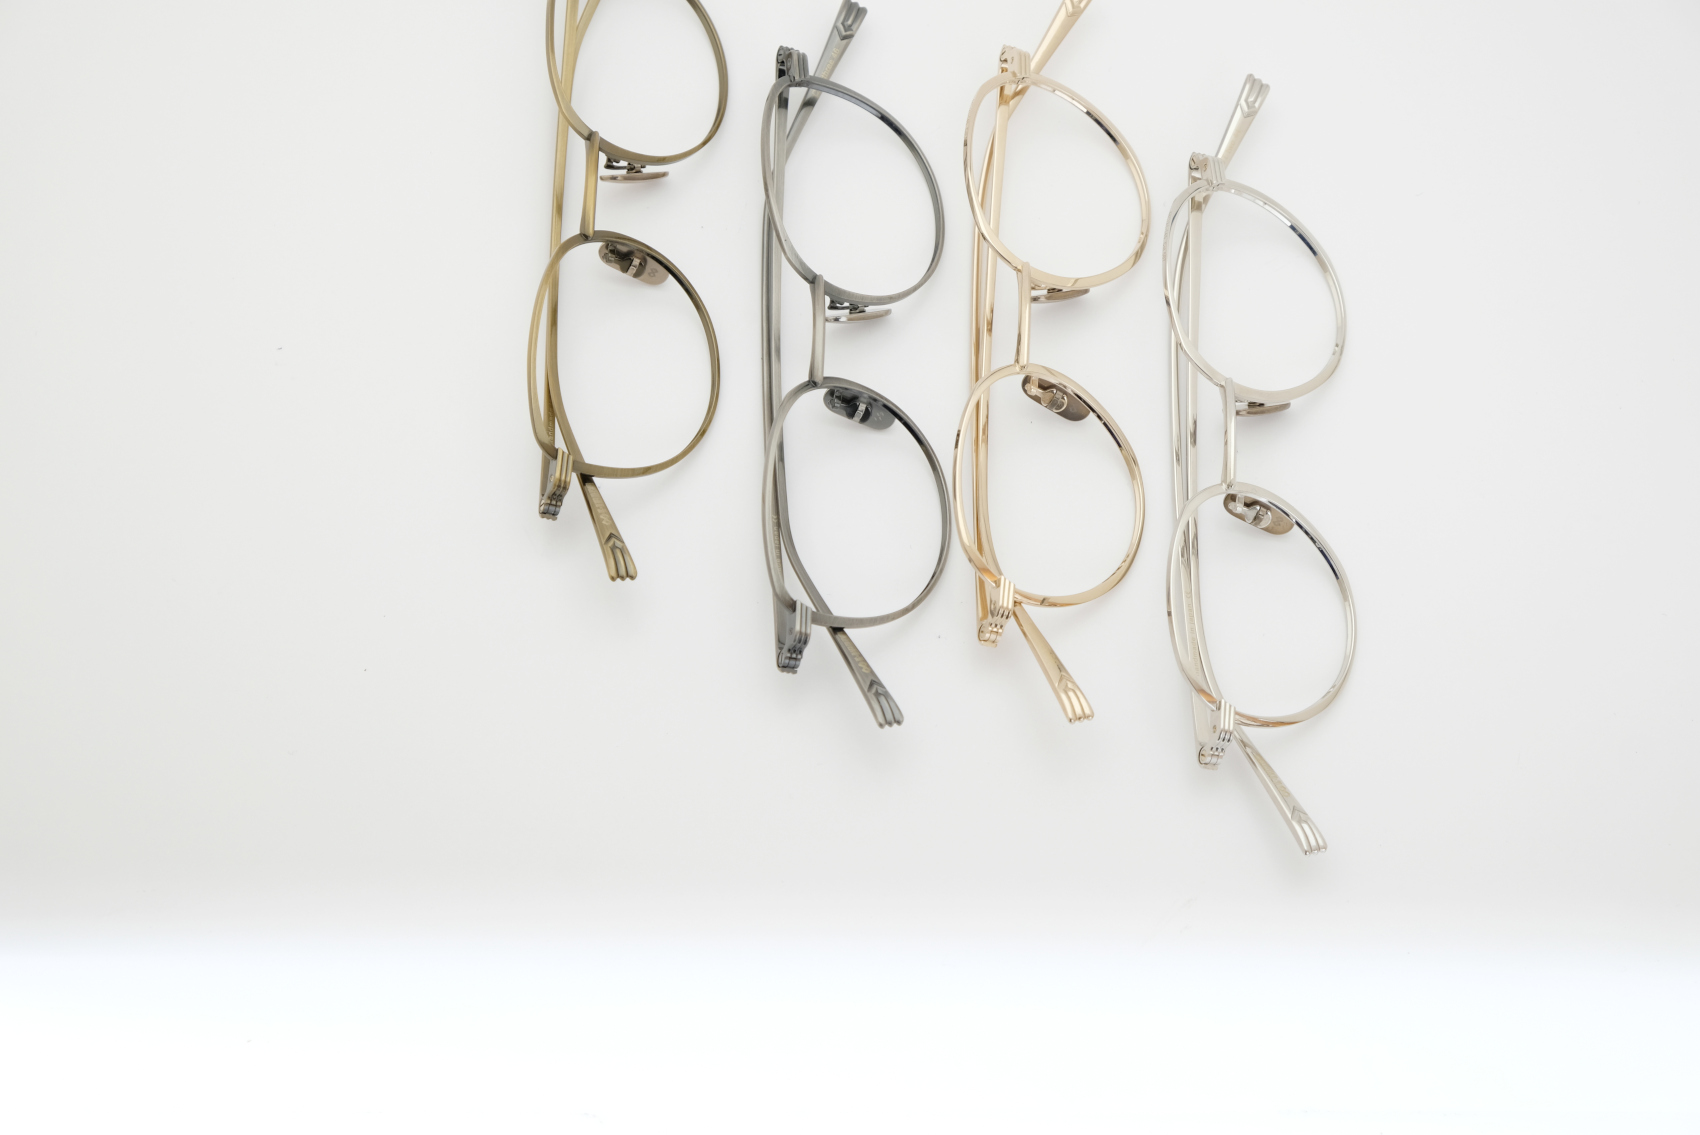 OG×OLIVER GOLDSMITH-CUT-TWO-THREE